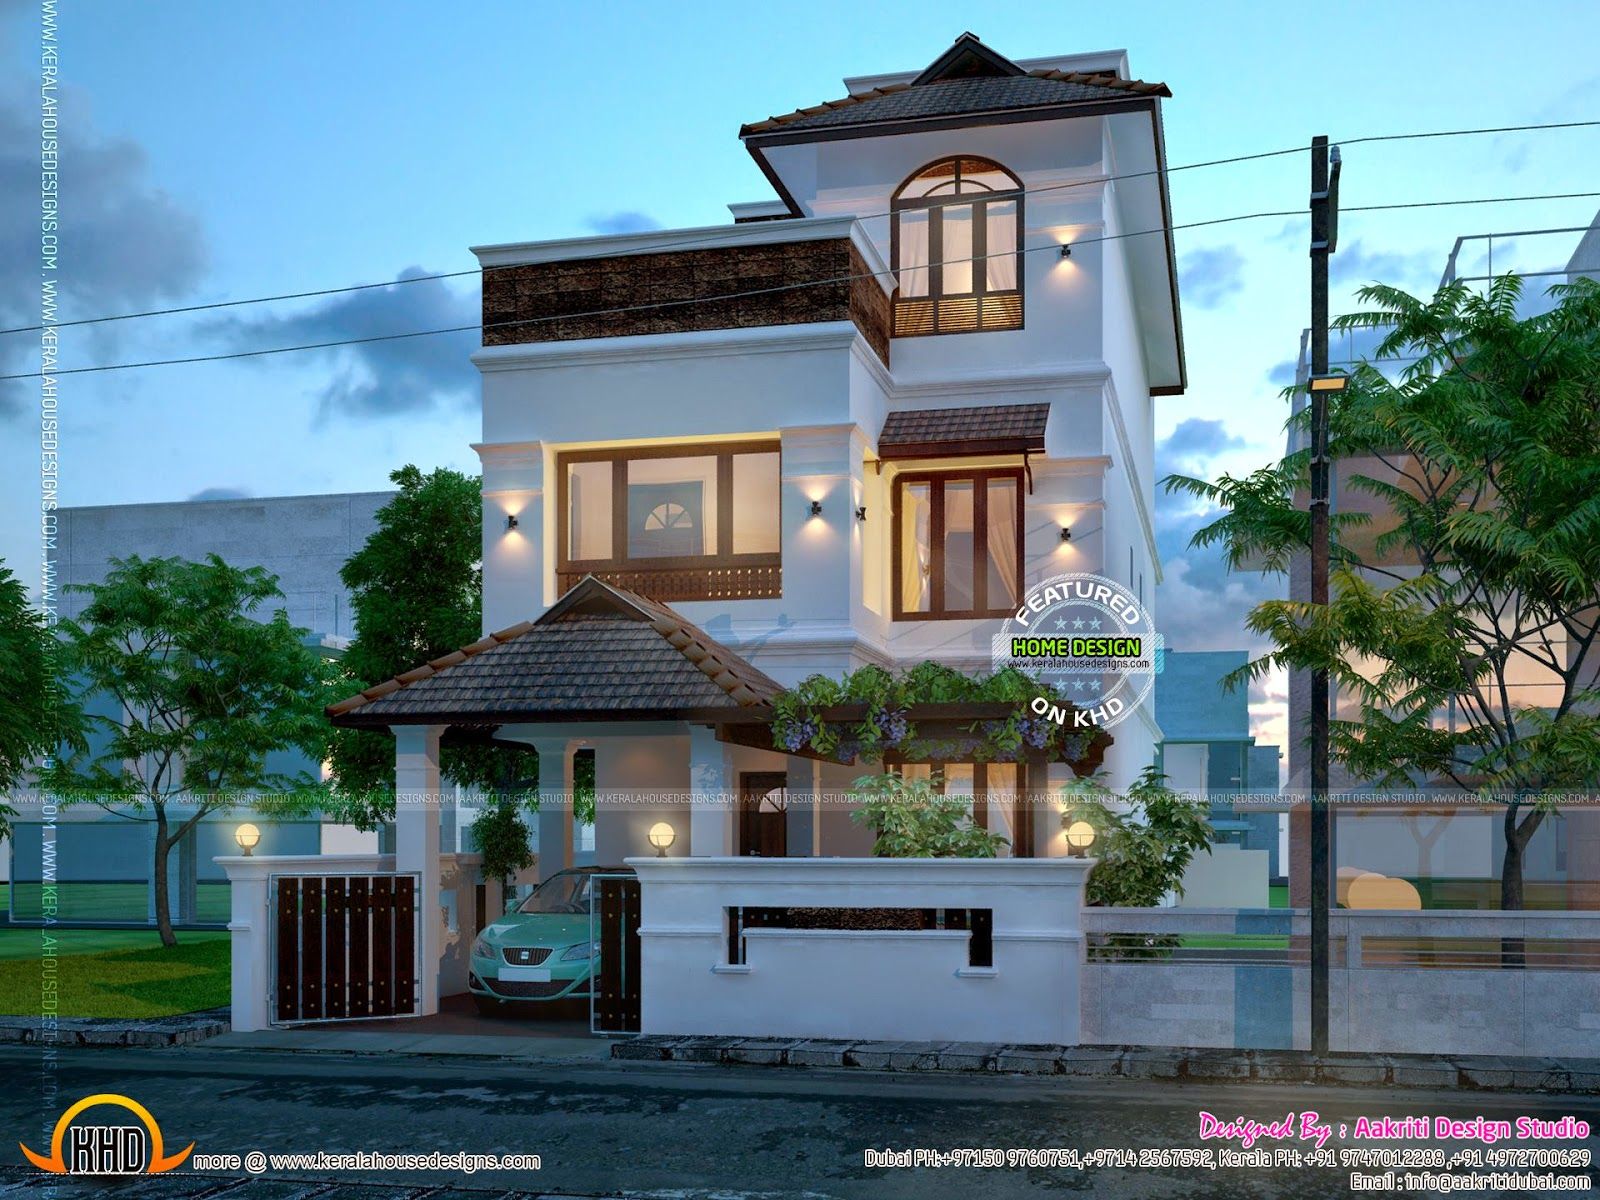 New house design kerala home design and floor plans for New home designs pictures